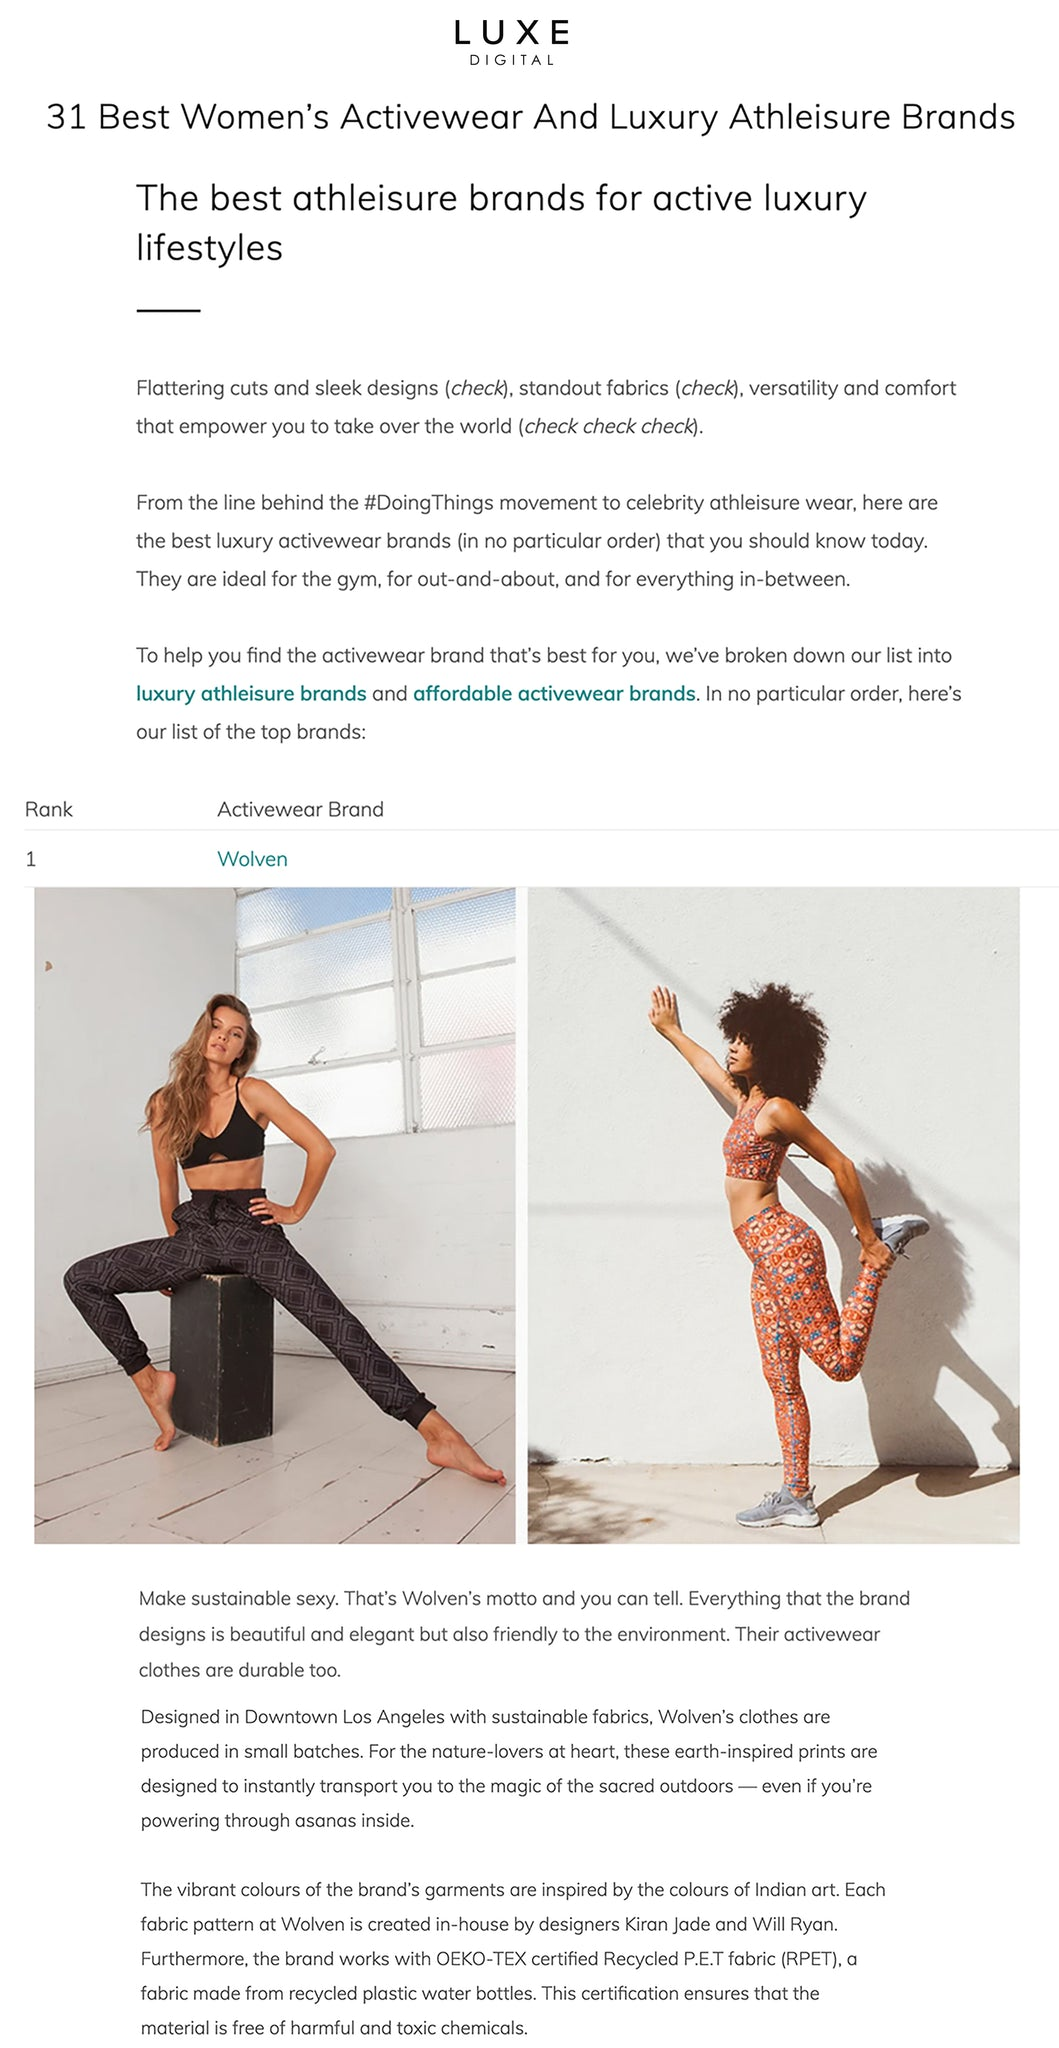 Wolven Luxe Digital Sustainable Athleisure Yoga Activewear